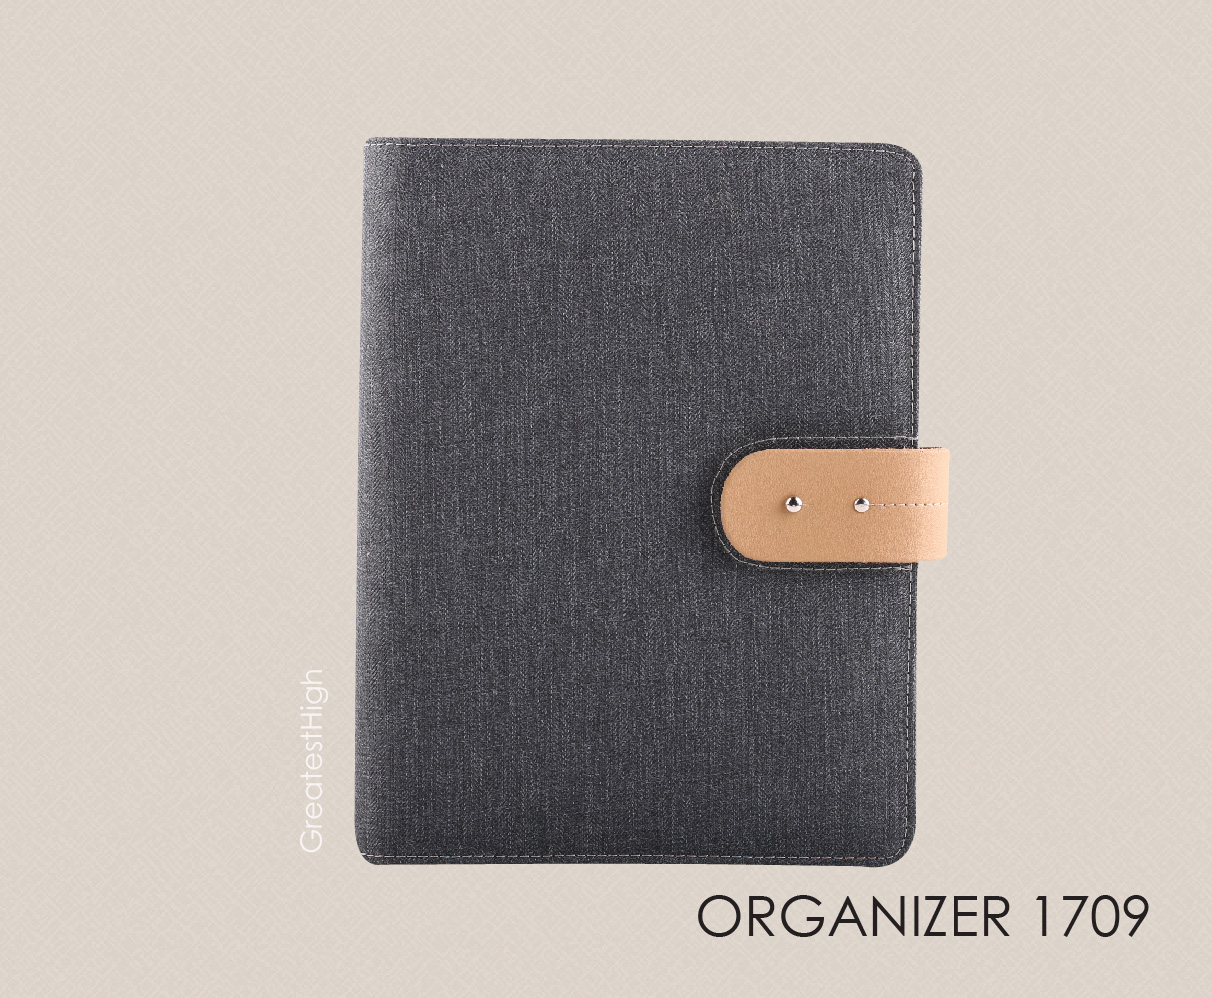 Organizer no. OR 1709, Nigel